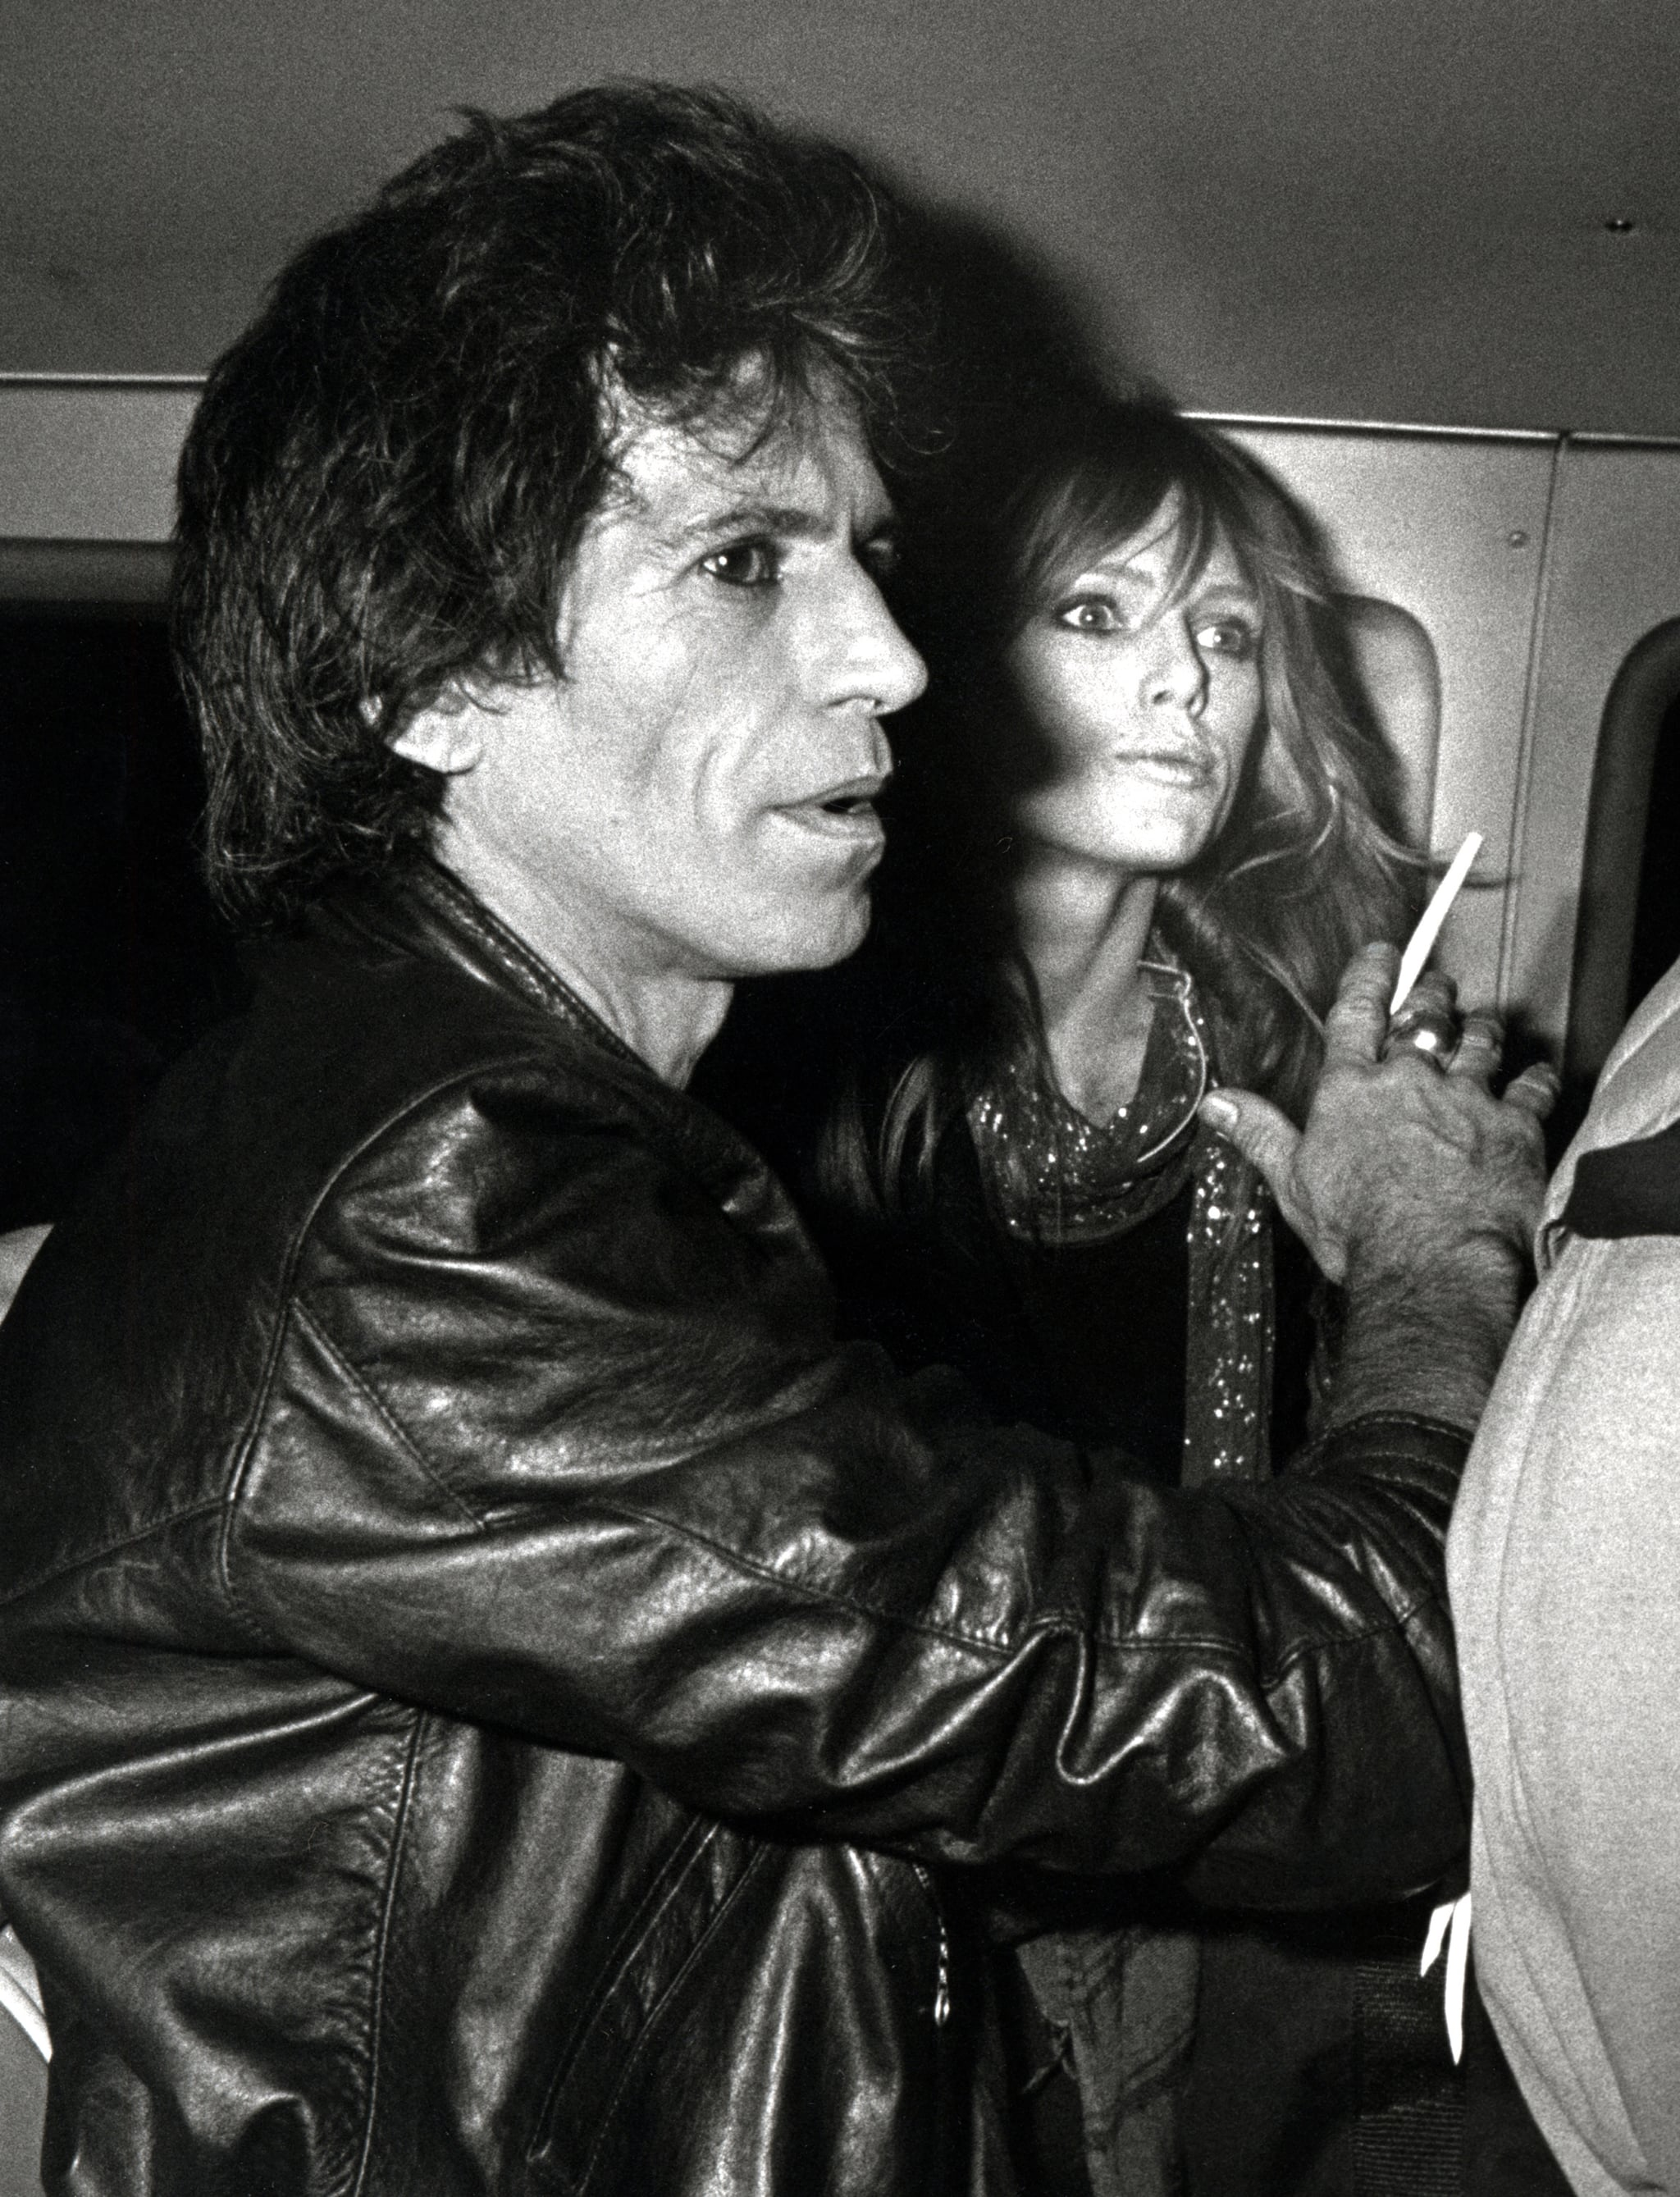 Rolling Stones guitarist Keith Richards married model Patti Hansen in 1983, and they have been together ever since. The couple have two daughters, Theodora and Alexandra.